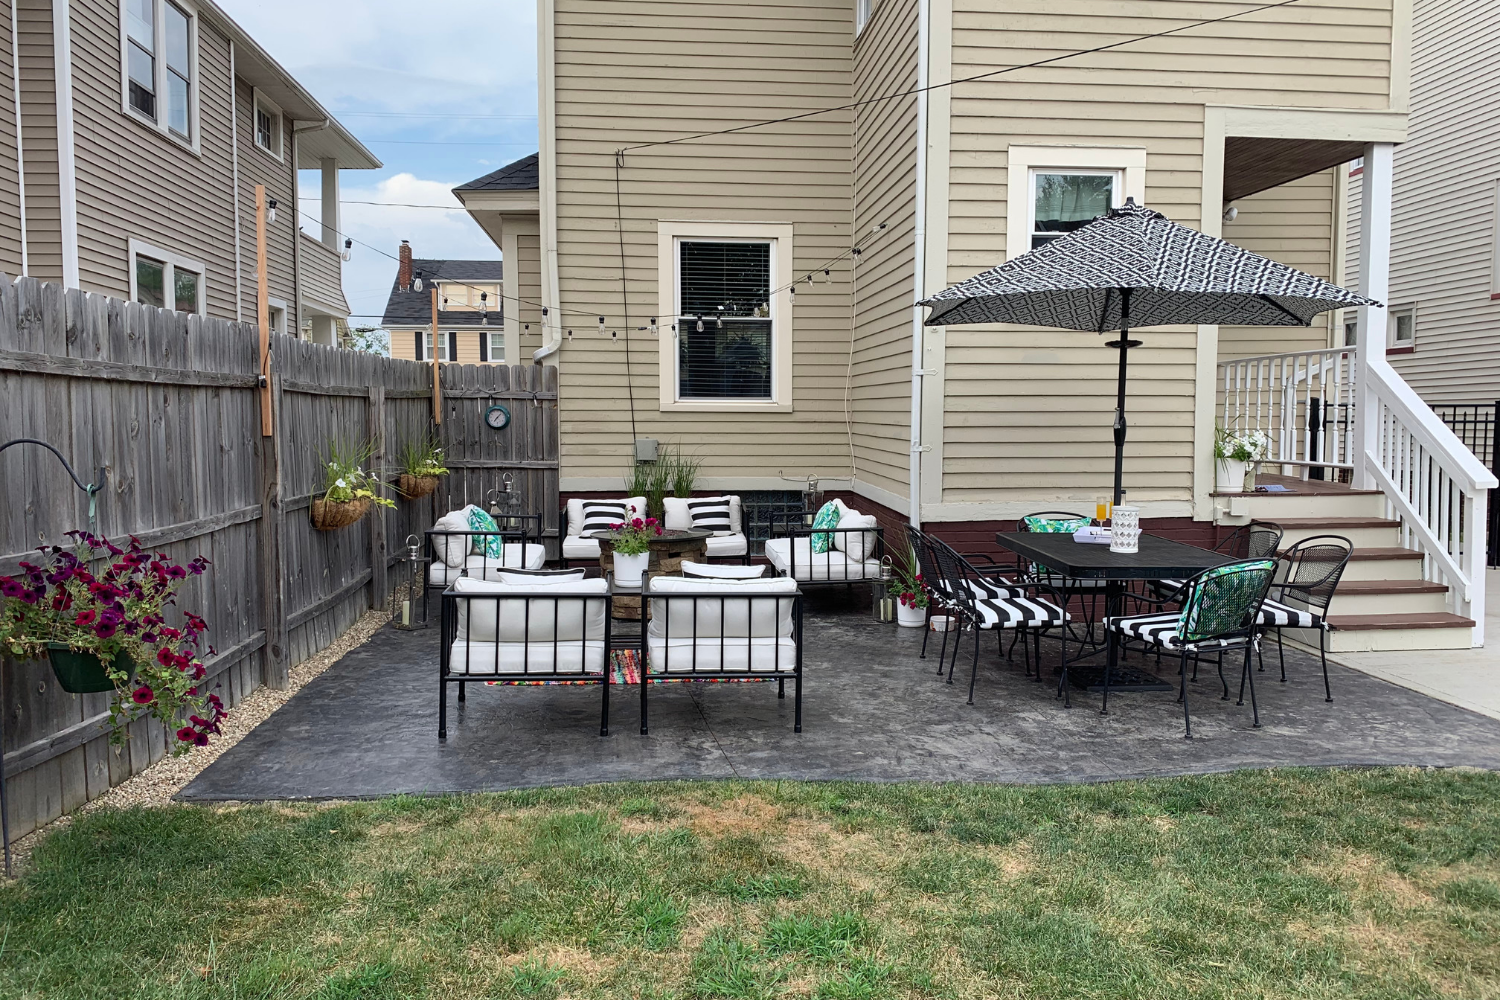 House Tour - Patio (4)